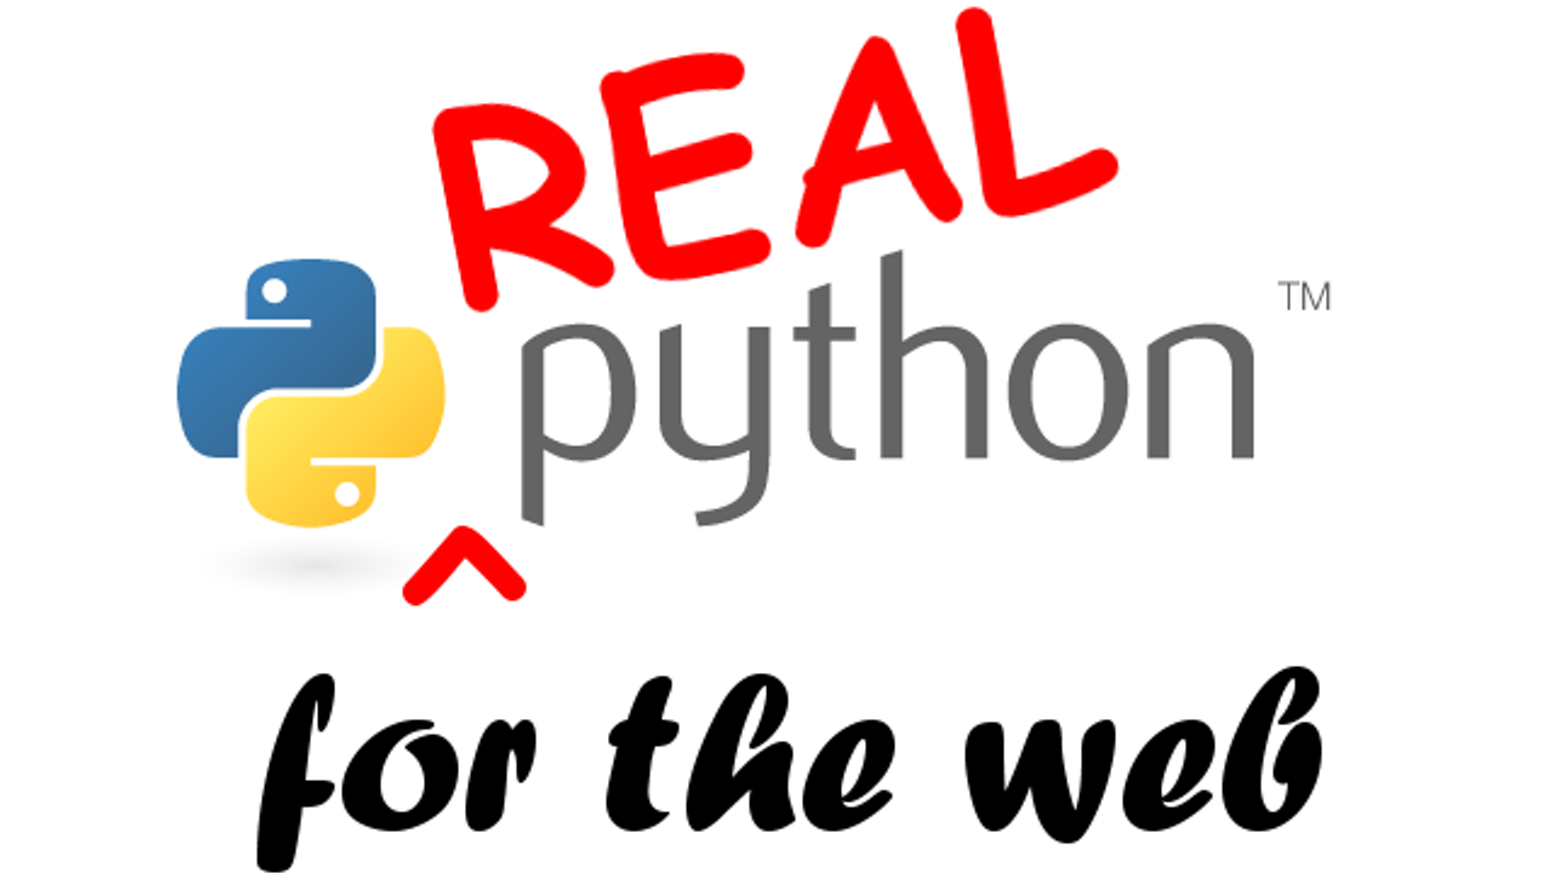 This course (ebook, exercises, videos) teaches Python Web Programming in a practical, hands-on manner. Learning by doing.